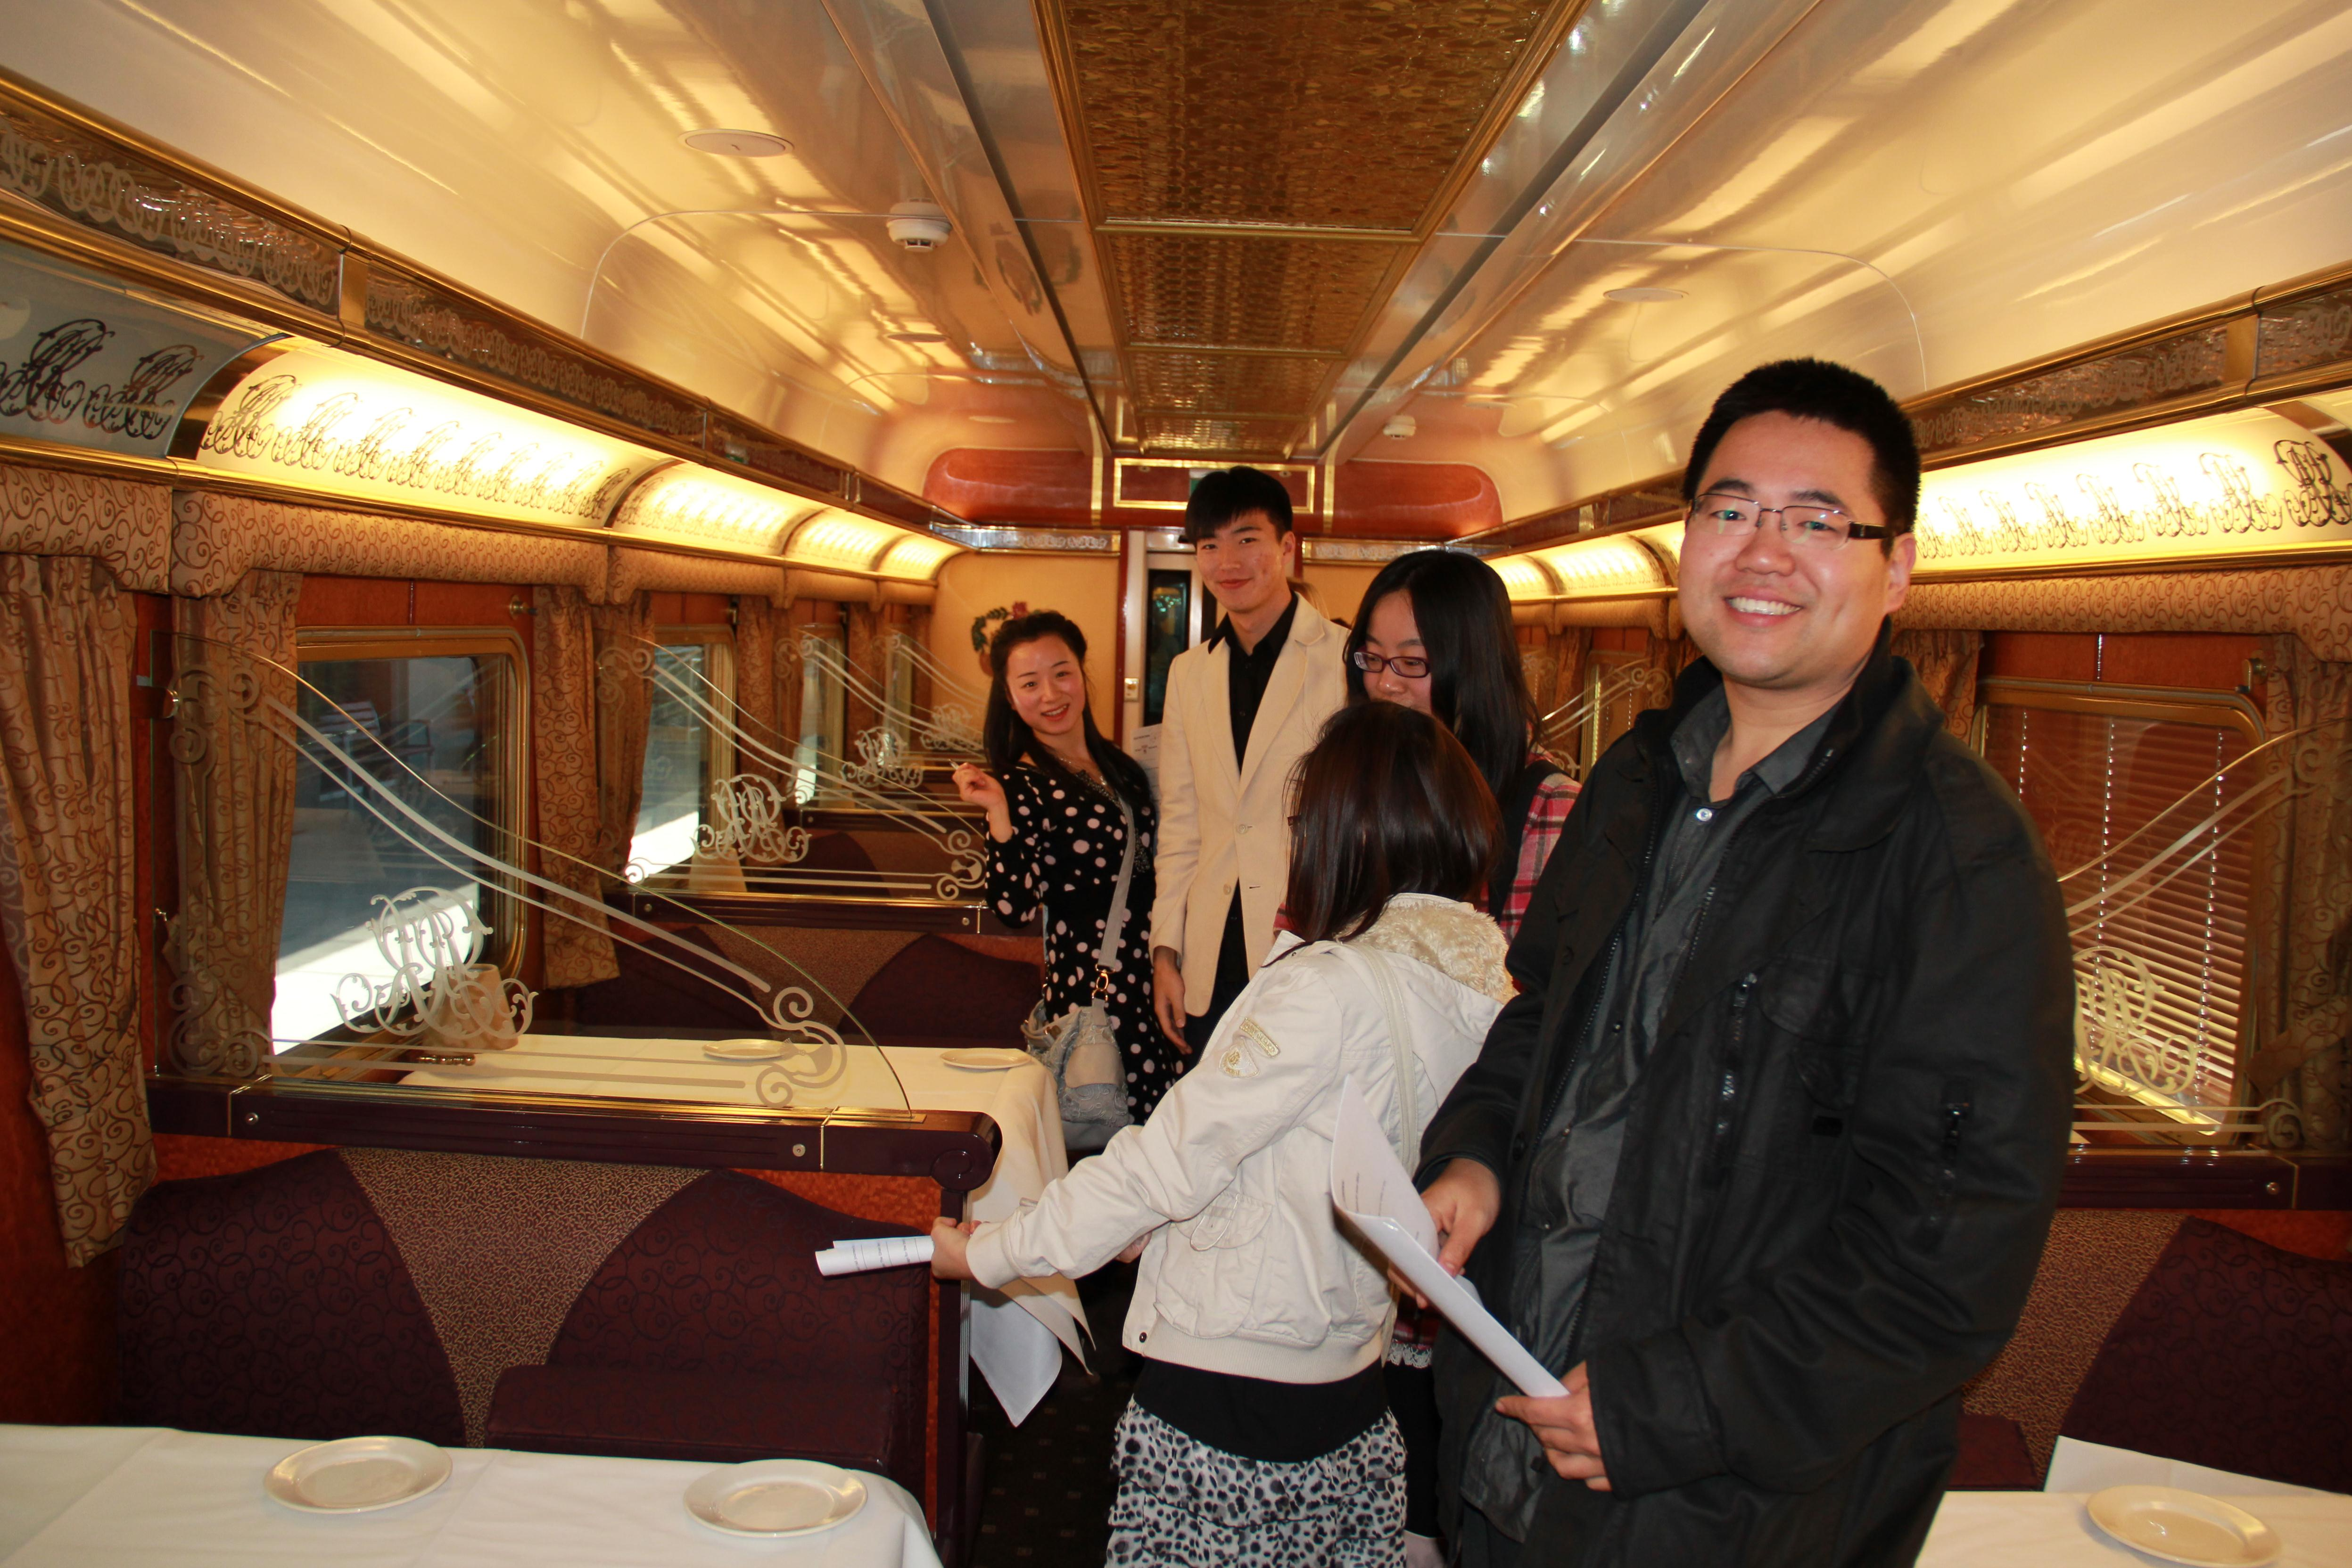 GROUP STUDENTS DINING CAR THE GHAN_crop.